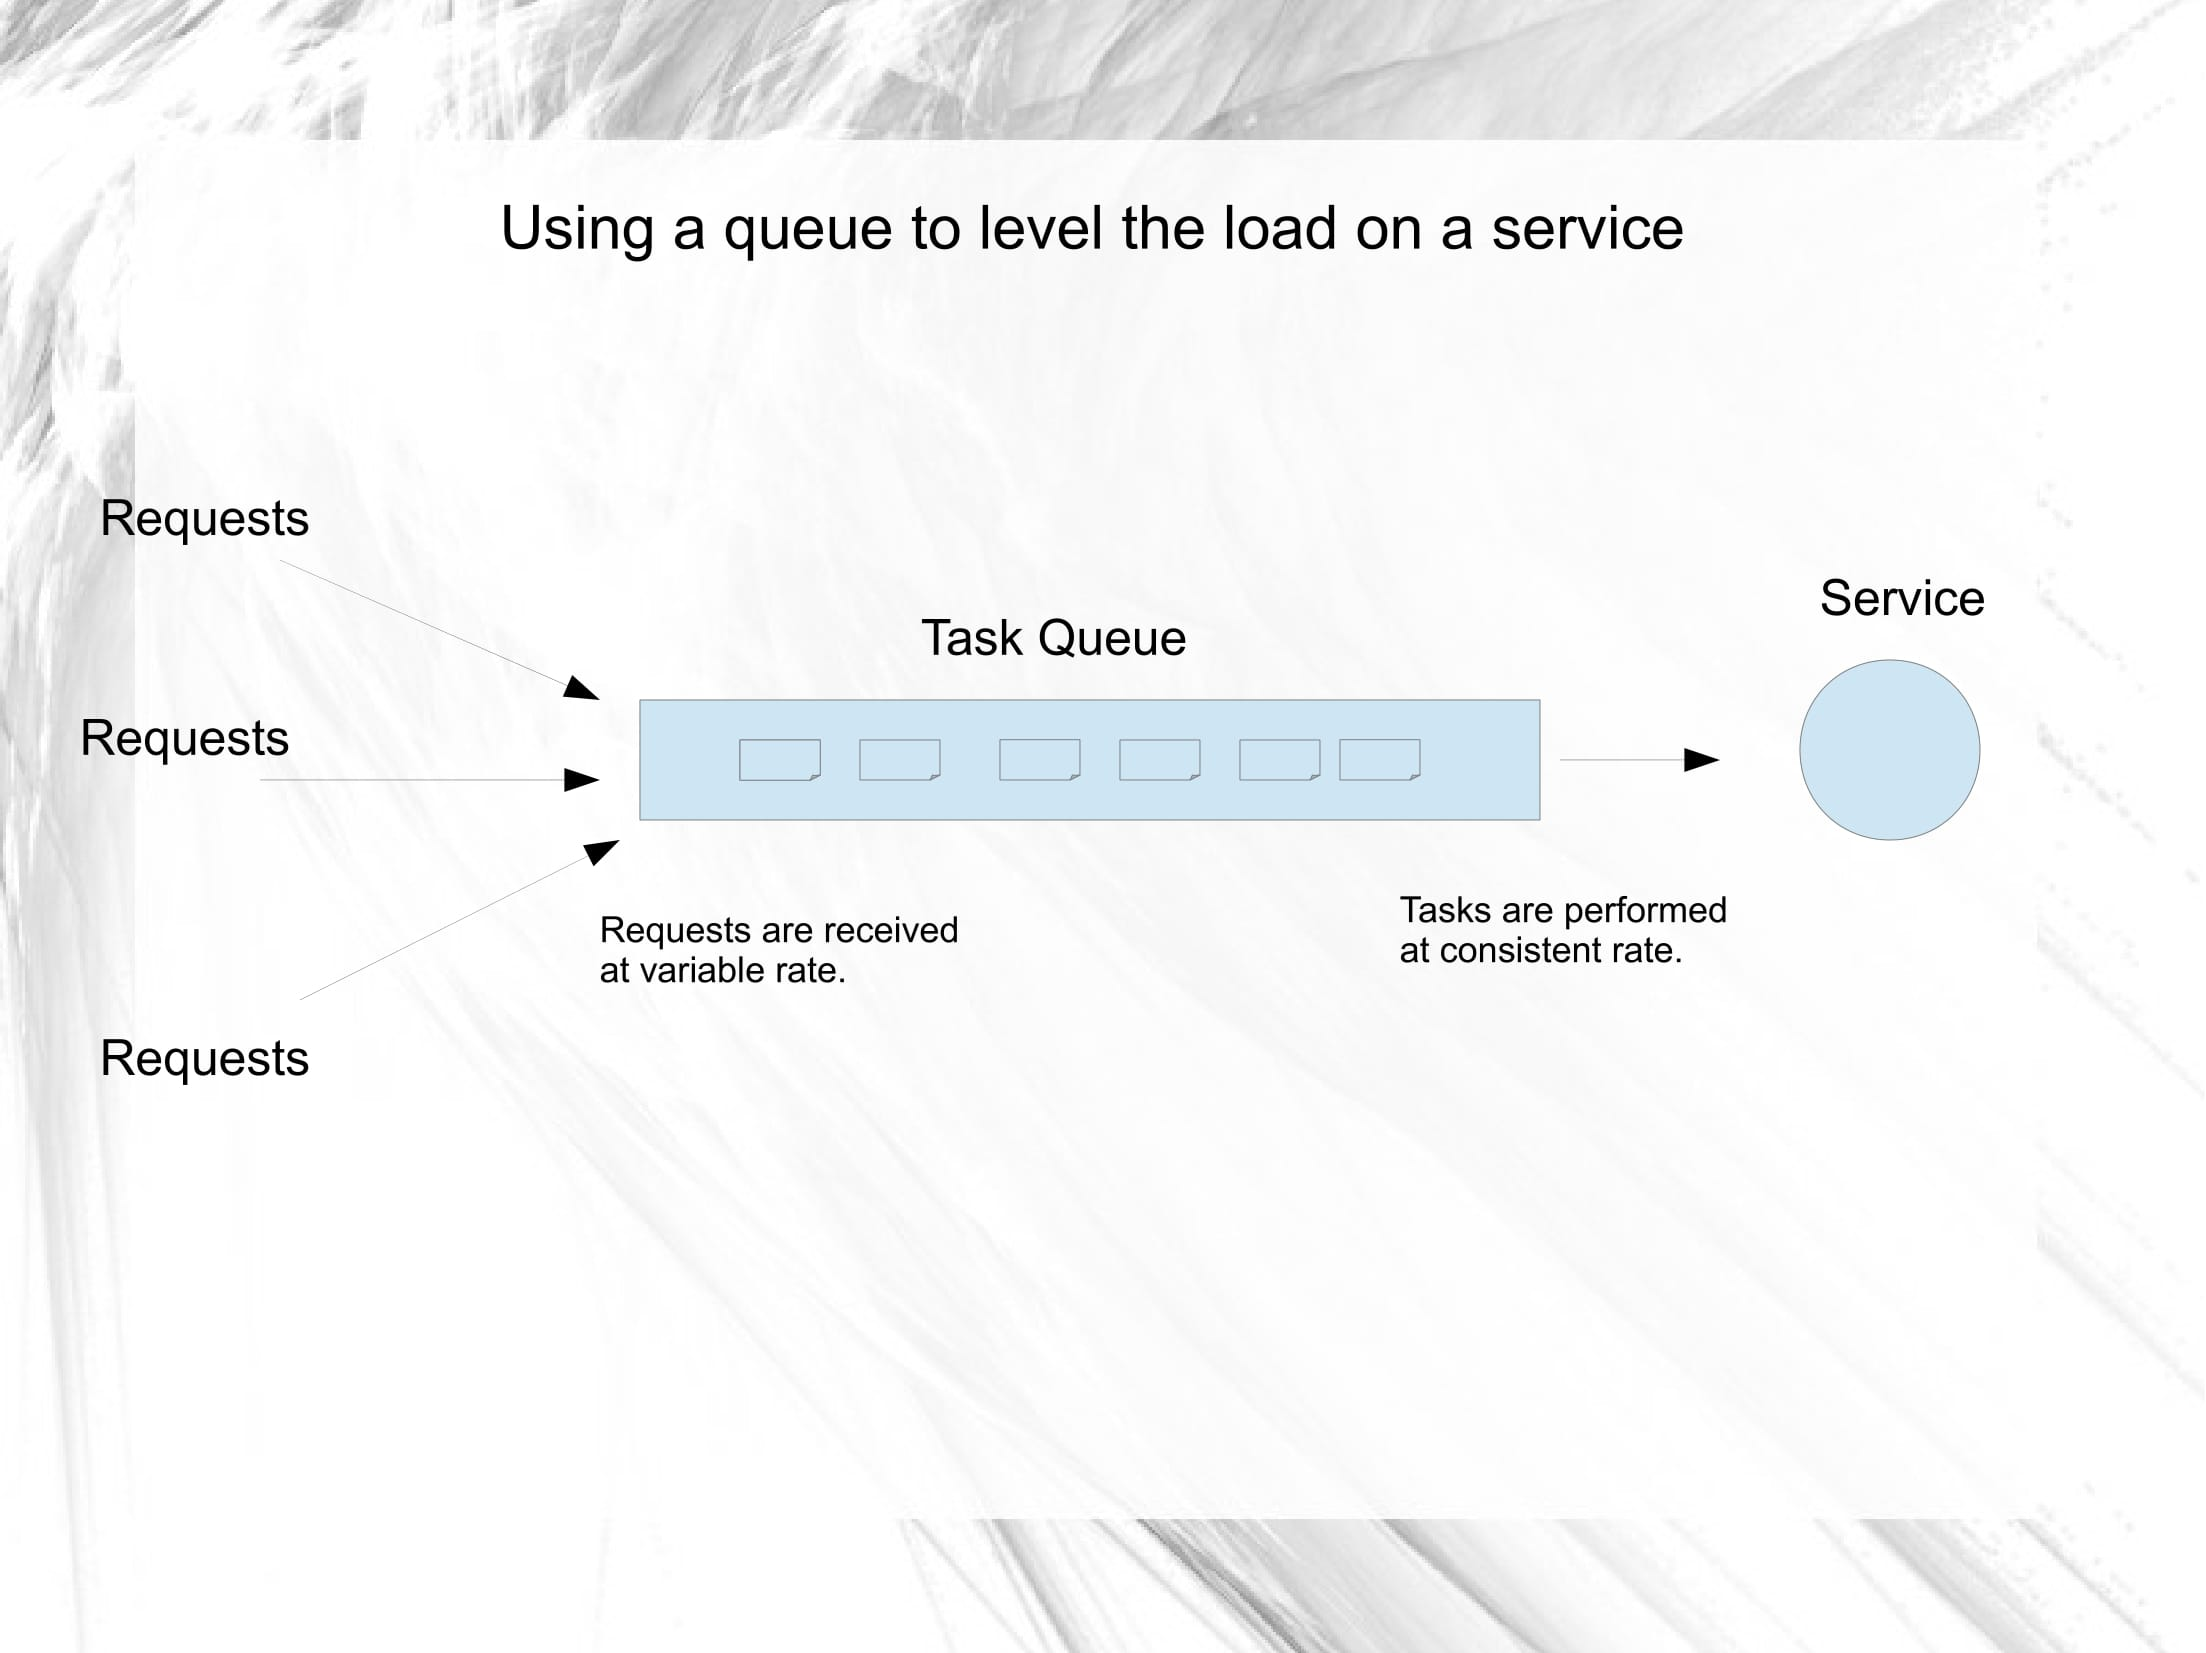 Queue-Based Load Leveling Pattern